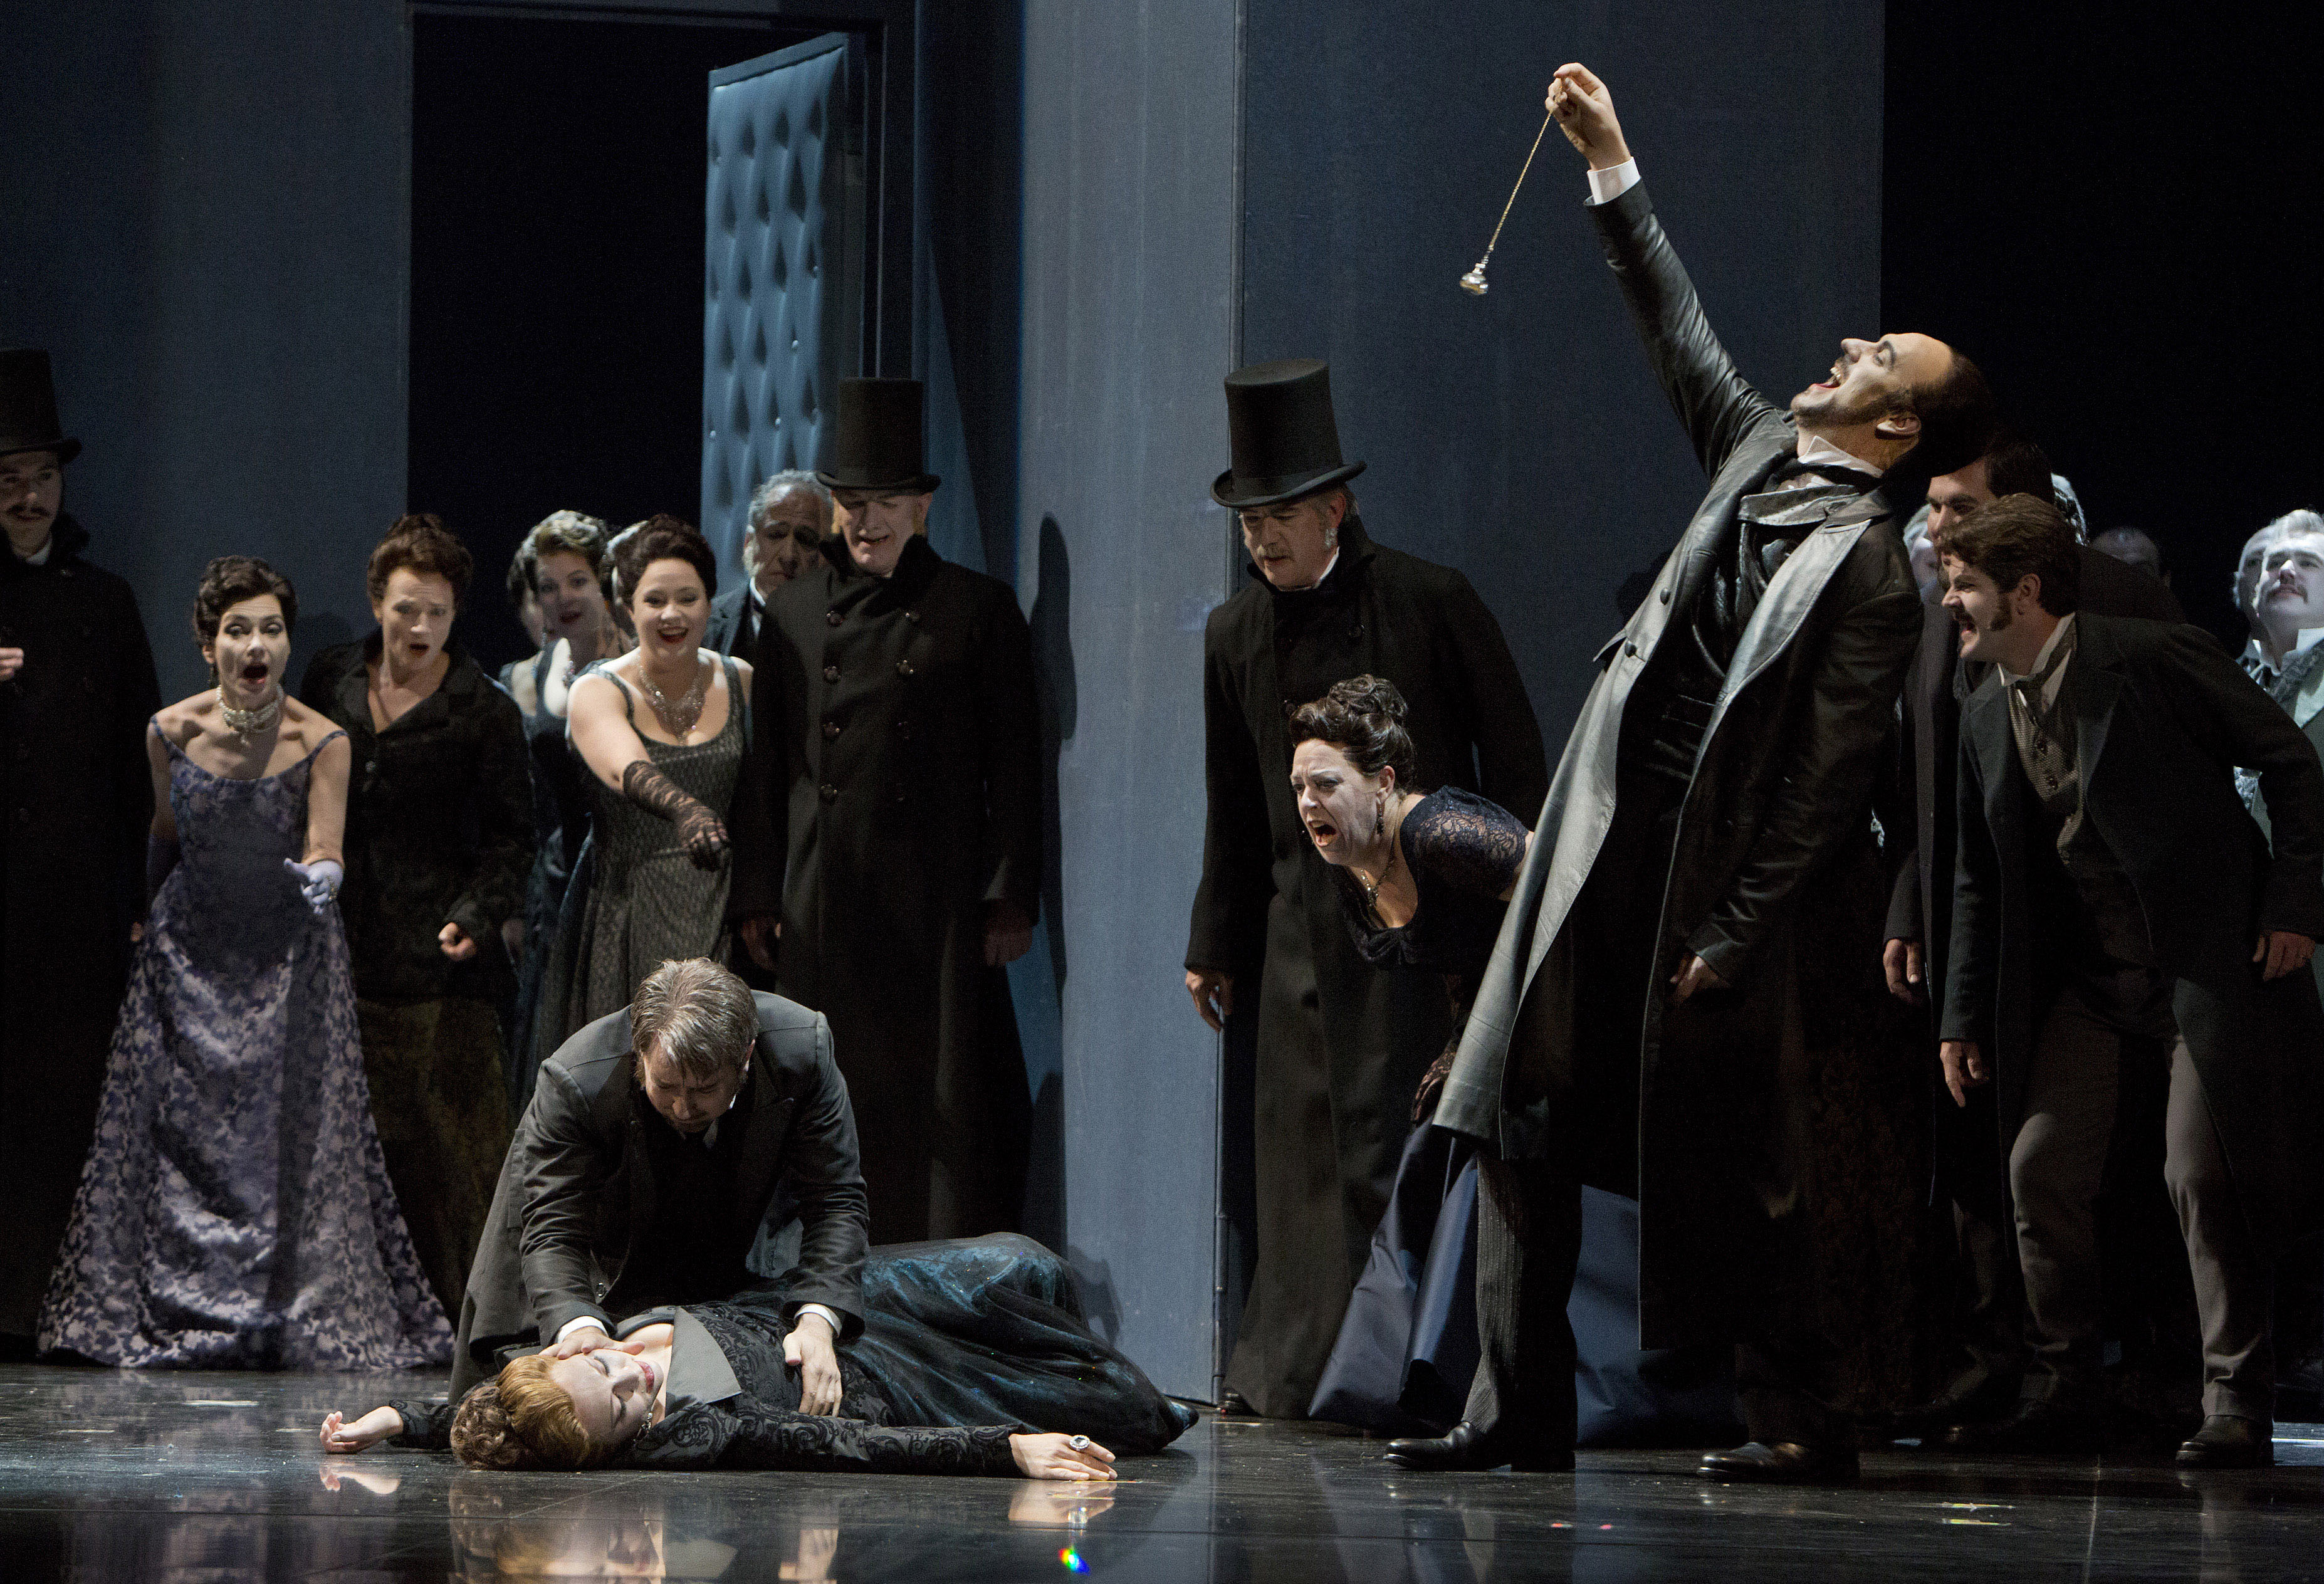 an analysis of the san francisco opera features Adler concert with the san francisco opera orchestra saturday, december 8, 7:30pm herbst theatre, 401 van ness ave, san francisco save the date for an exciting night of unforgettable music featuring the renowned san francisco opera resident artists, the 2018 adler fellows, in their final concert of the year.